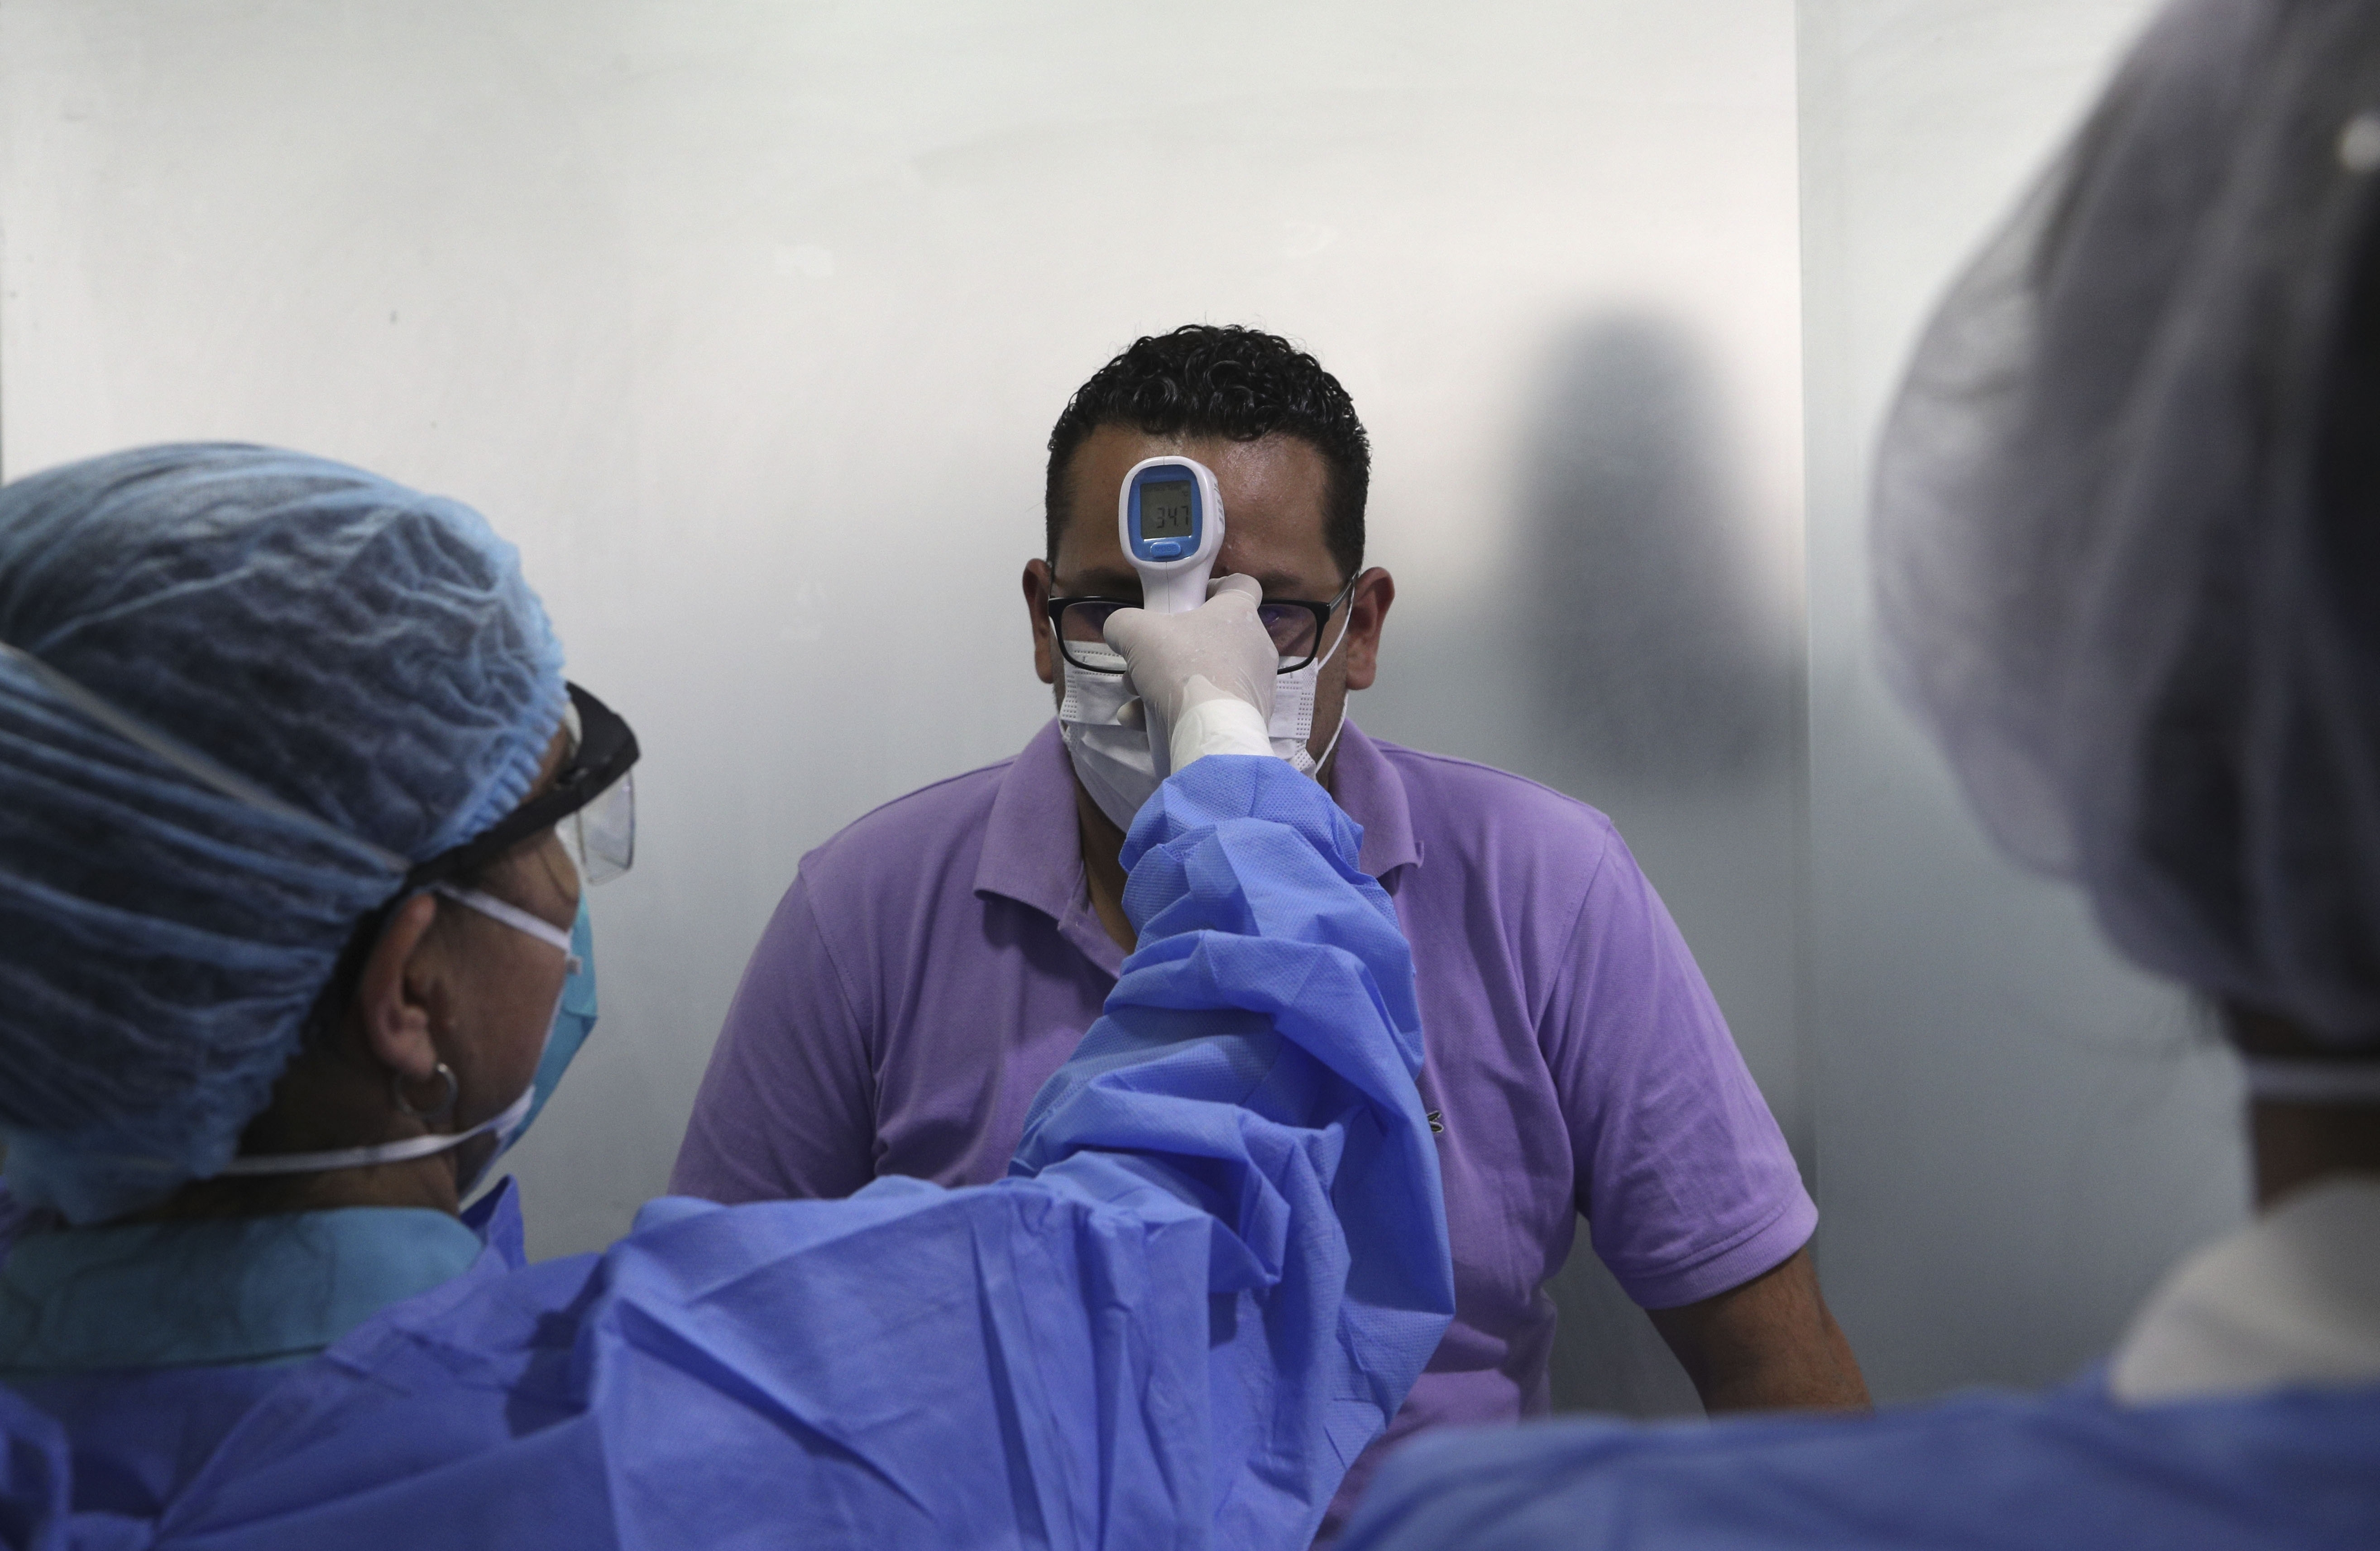 A man wearing a mask as a precautionary measure against the spread of the new coronavirus gets his temperature taken.